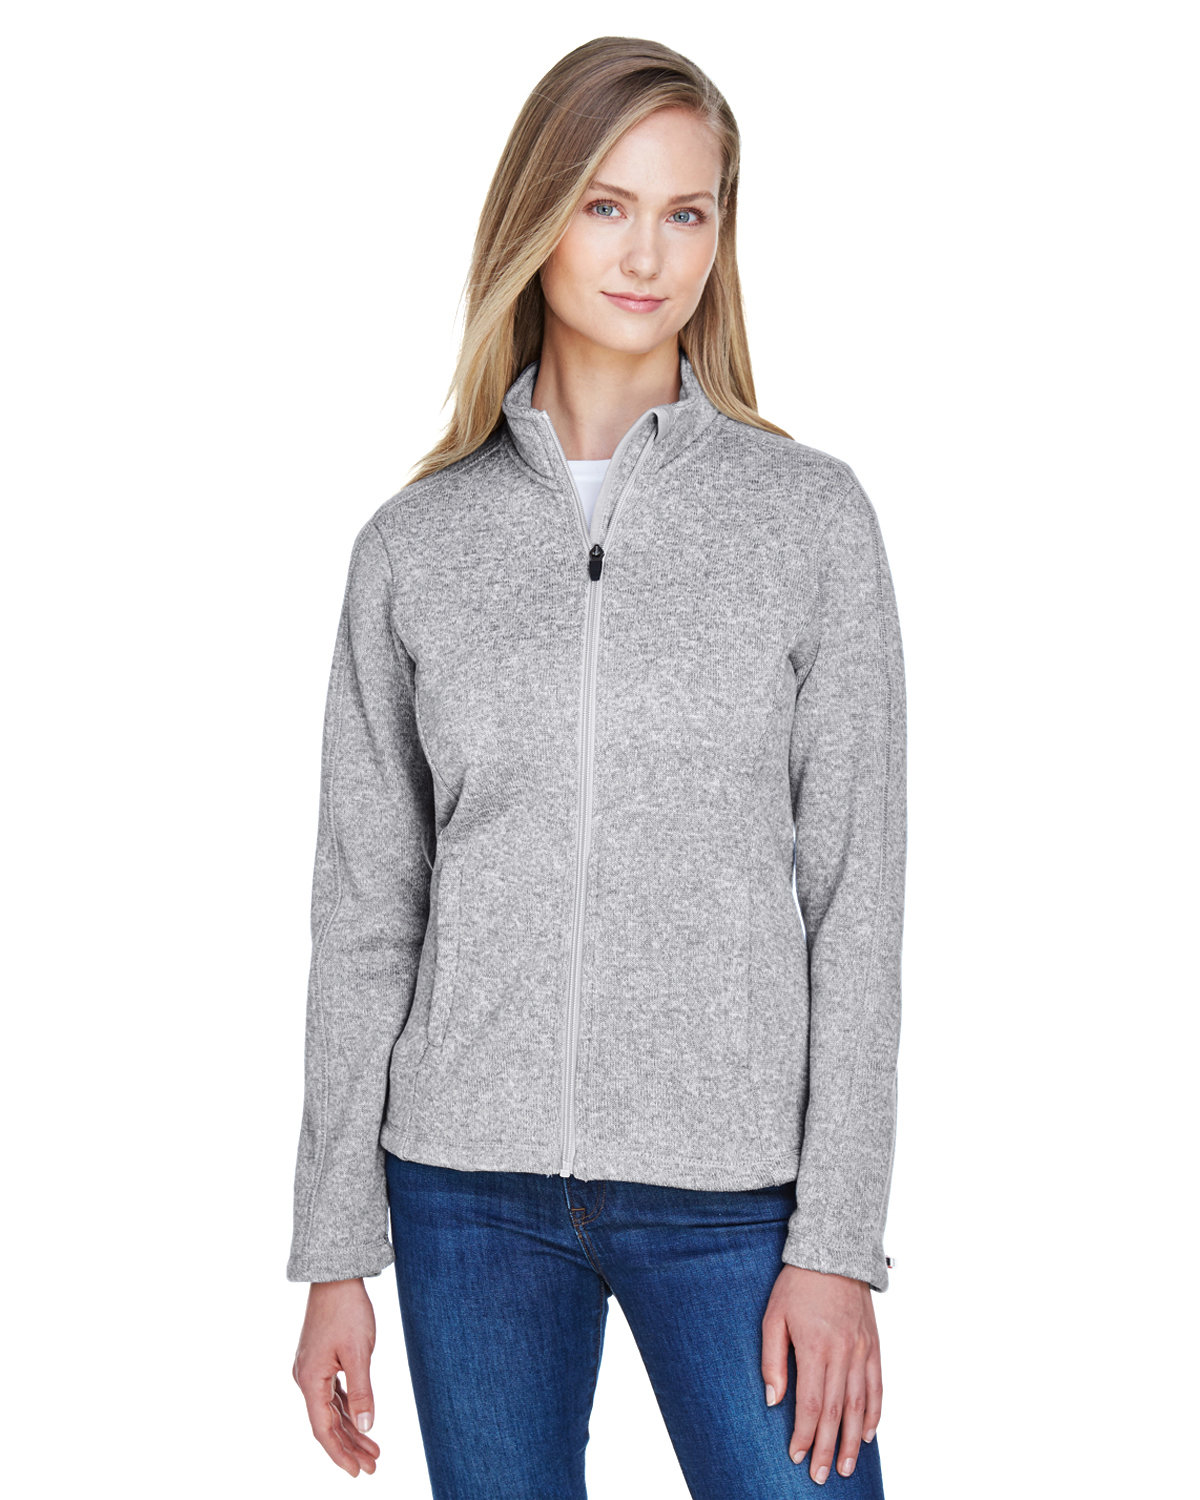 69f20c1d9f85 Devon   Jones DG793W - Ladies Bristol Full-Zip Sweater Fleece Jacket